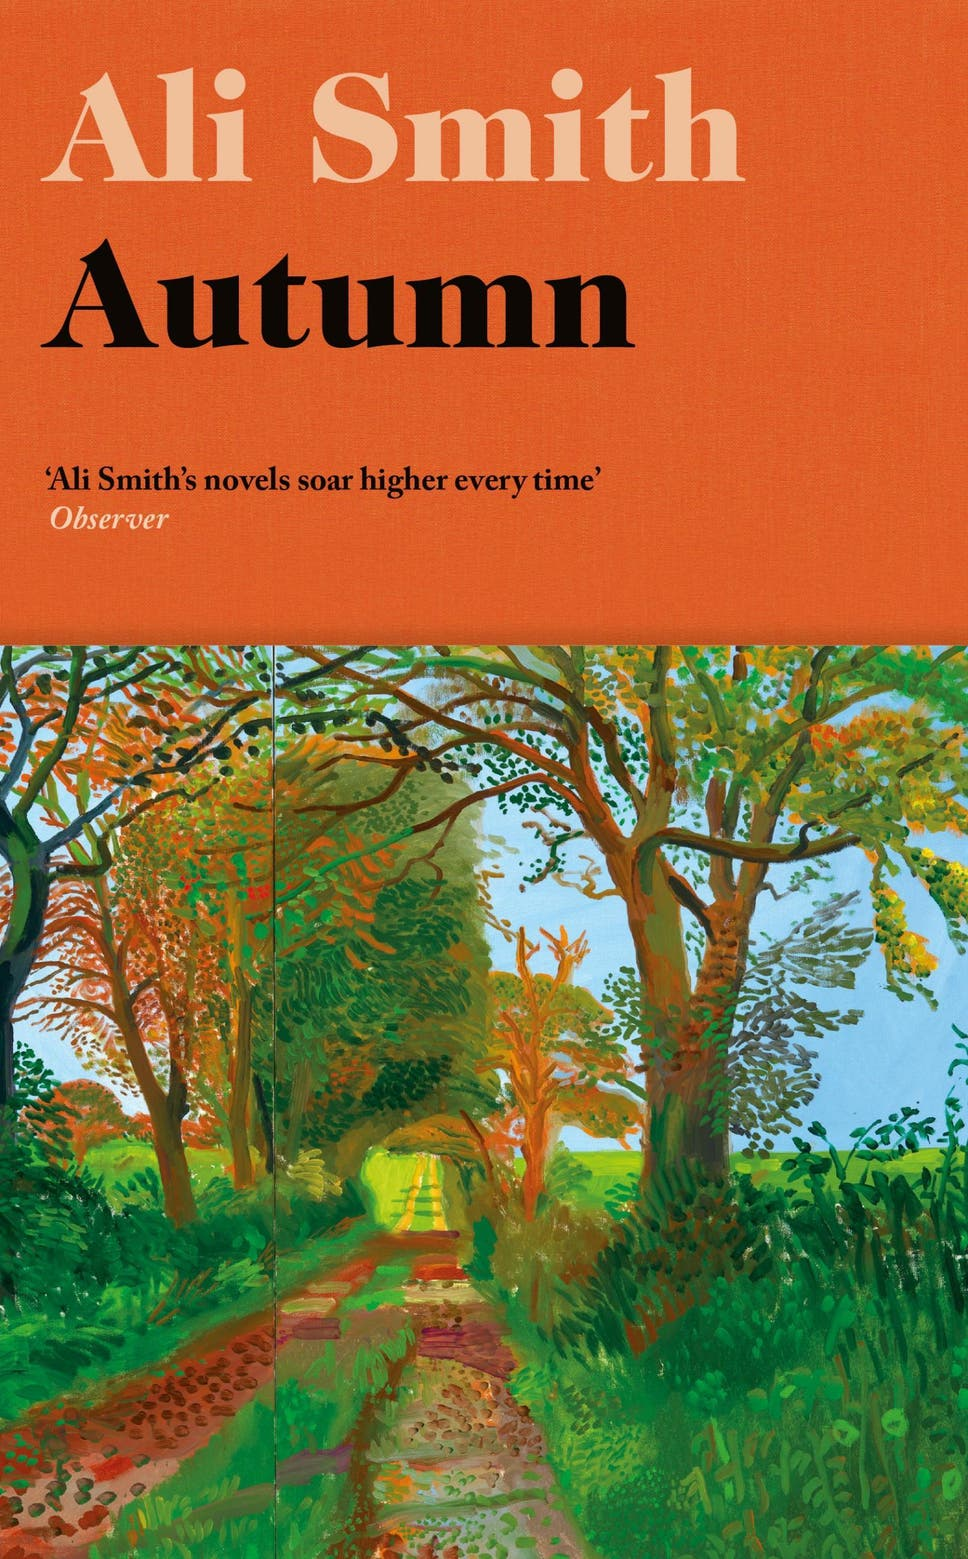 Image result for autumn ali smith